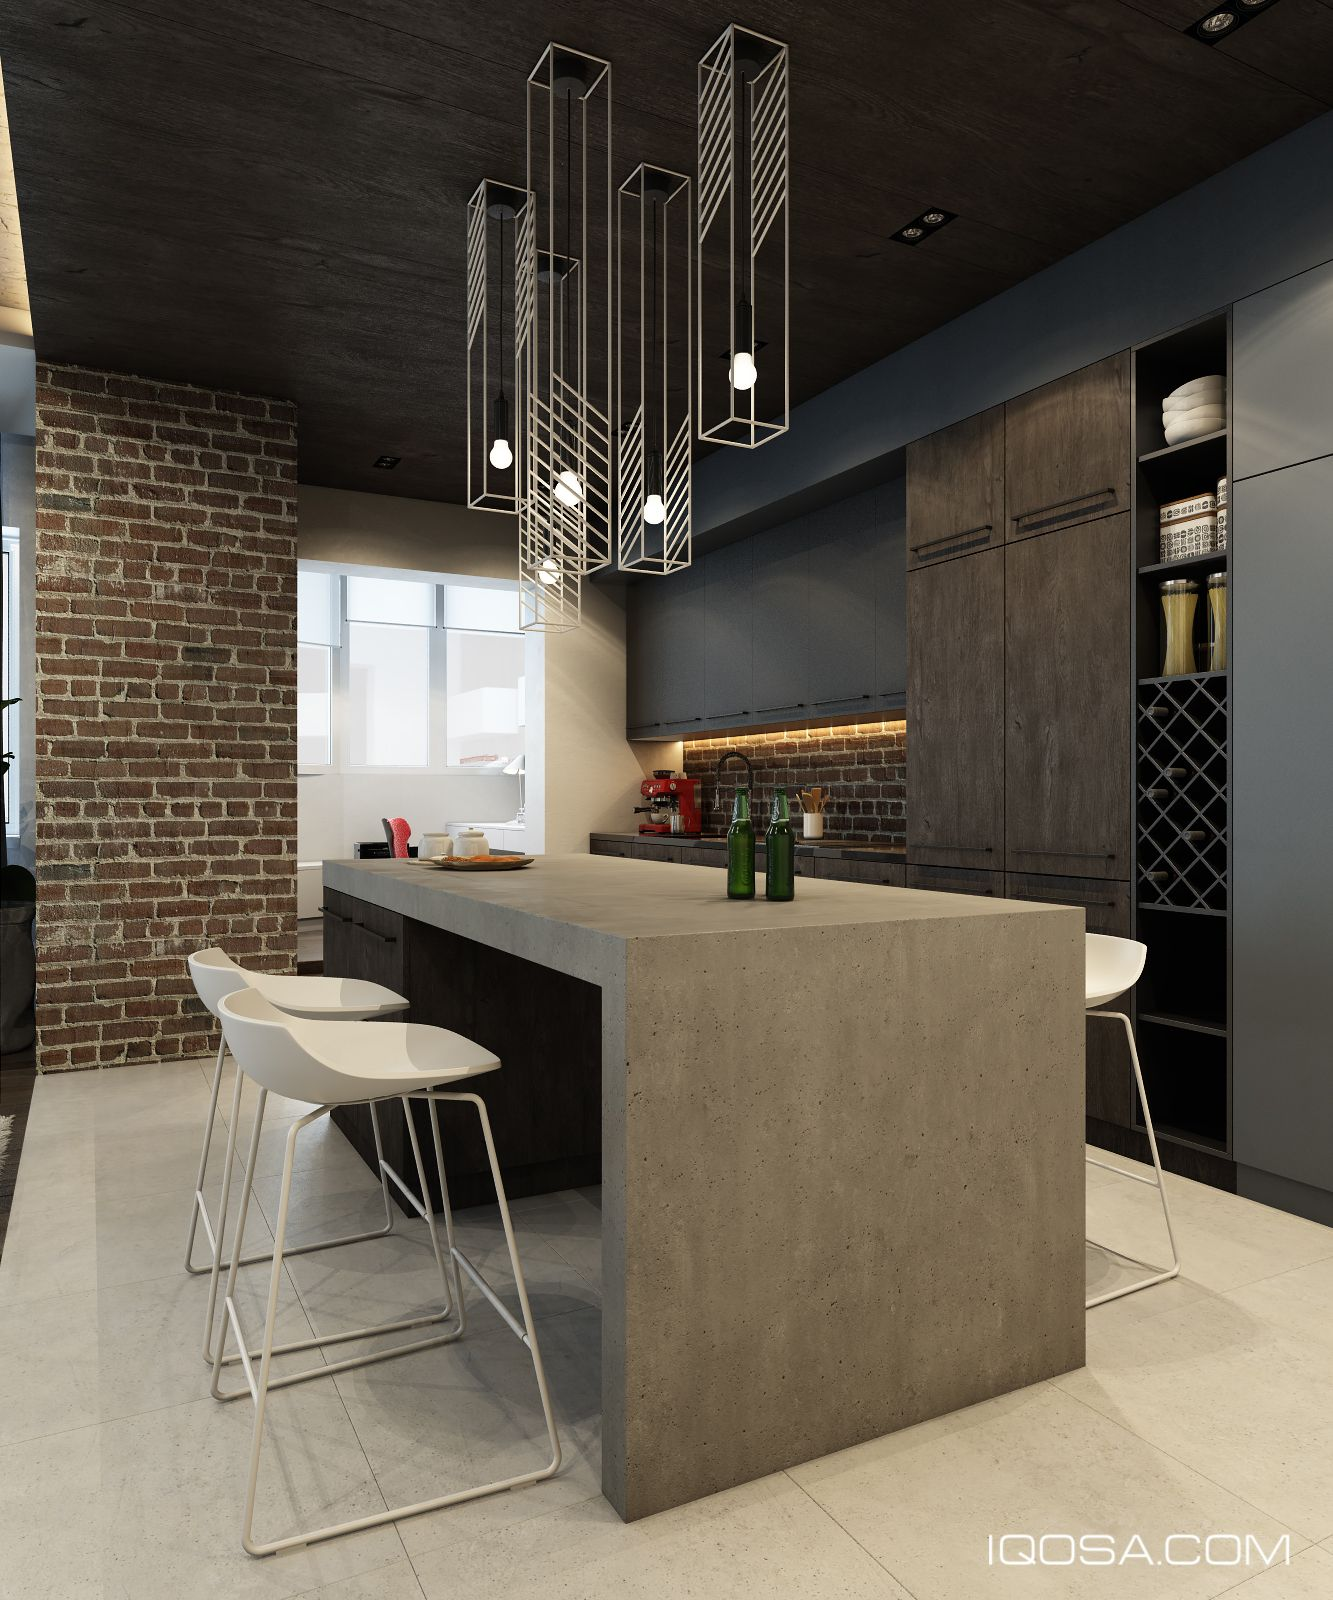 Chez Moi Apartments: Kitchen In Concrete Look, Black And Brick Wall (wallpaper